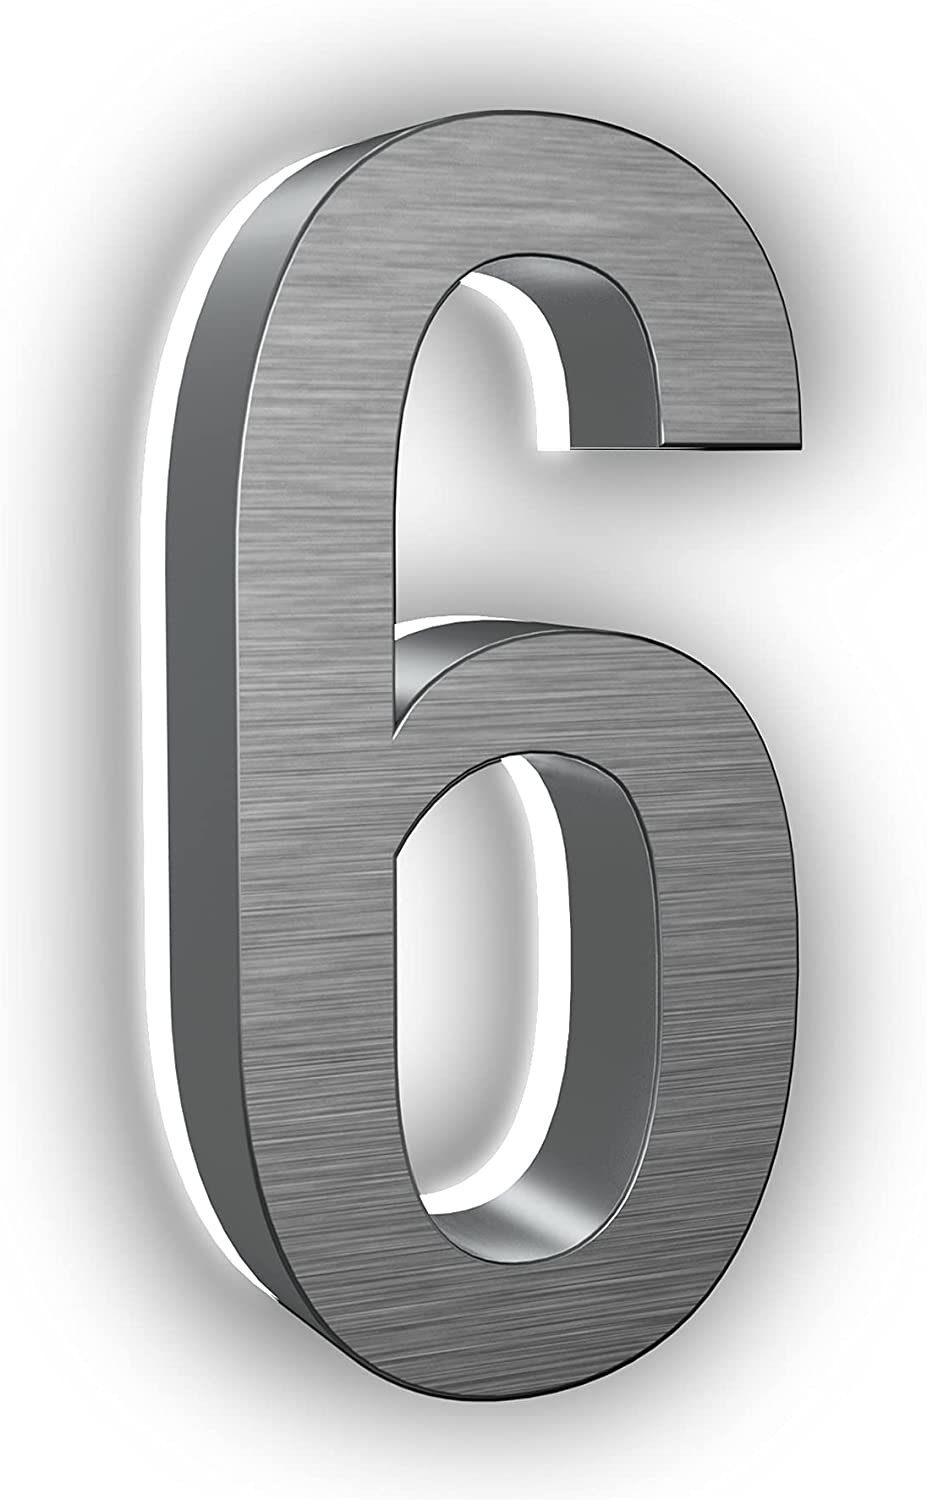 LN LUMANUMBERS 5 Inches Steel Backlit LED Floating Address Number, Up-Scale Modern Look, Lighted House Numbers, 6, Brushed Nickel, Illuminated Address Numbers